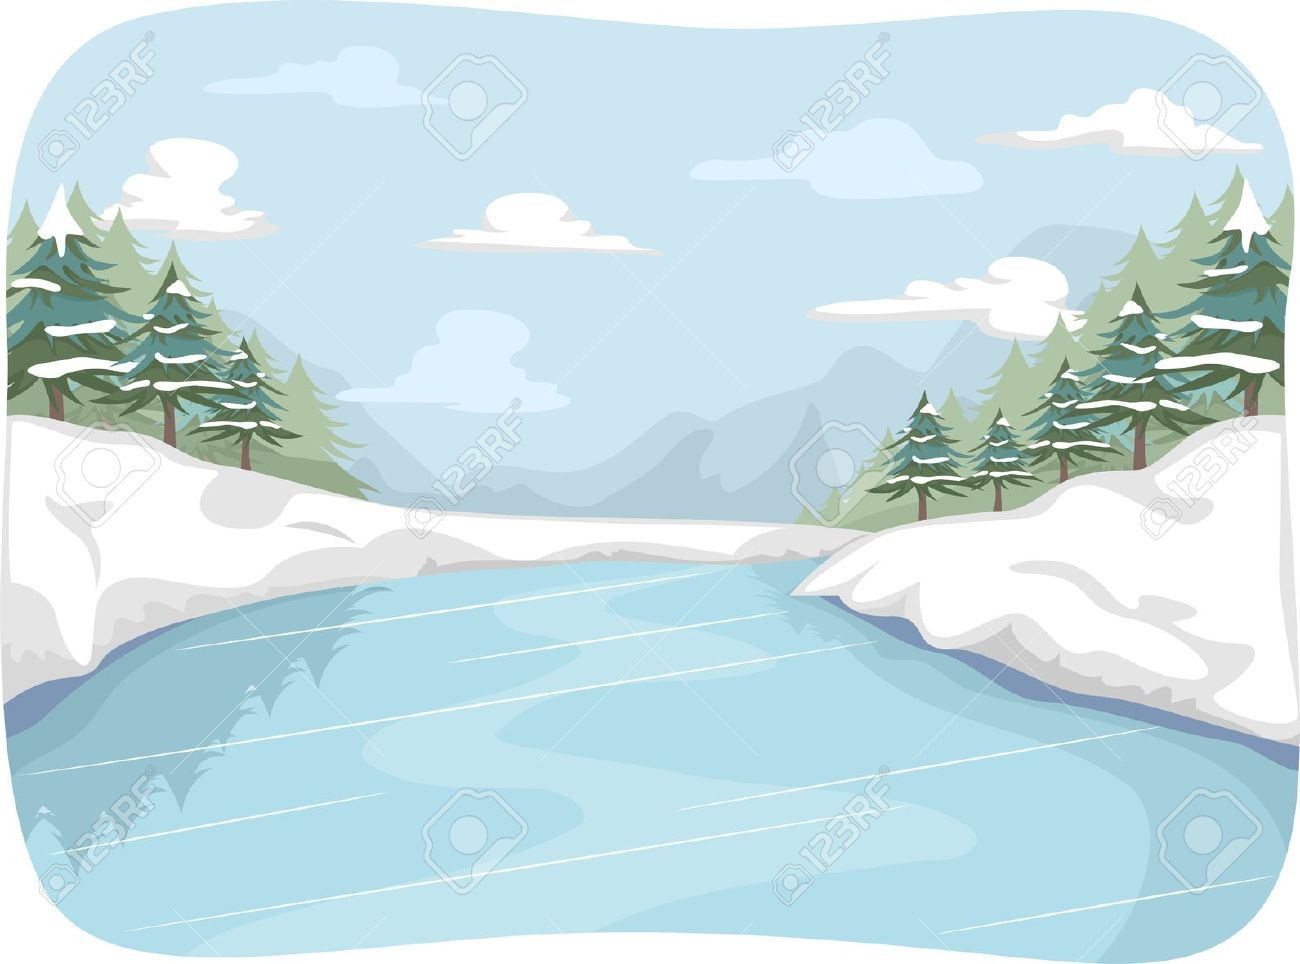 lake in winter clipart clipground Ice Skating Rink Clip Art Sledding Clip Art Free